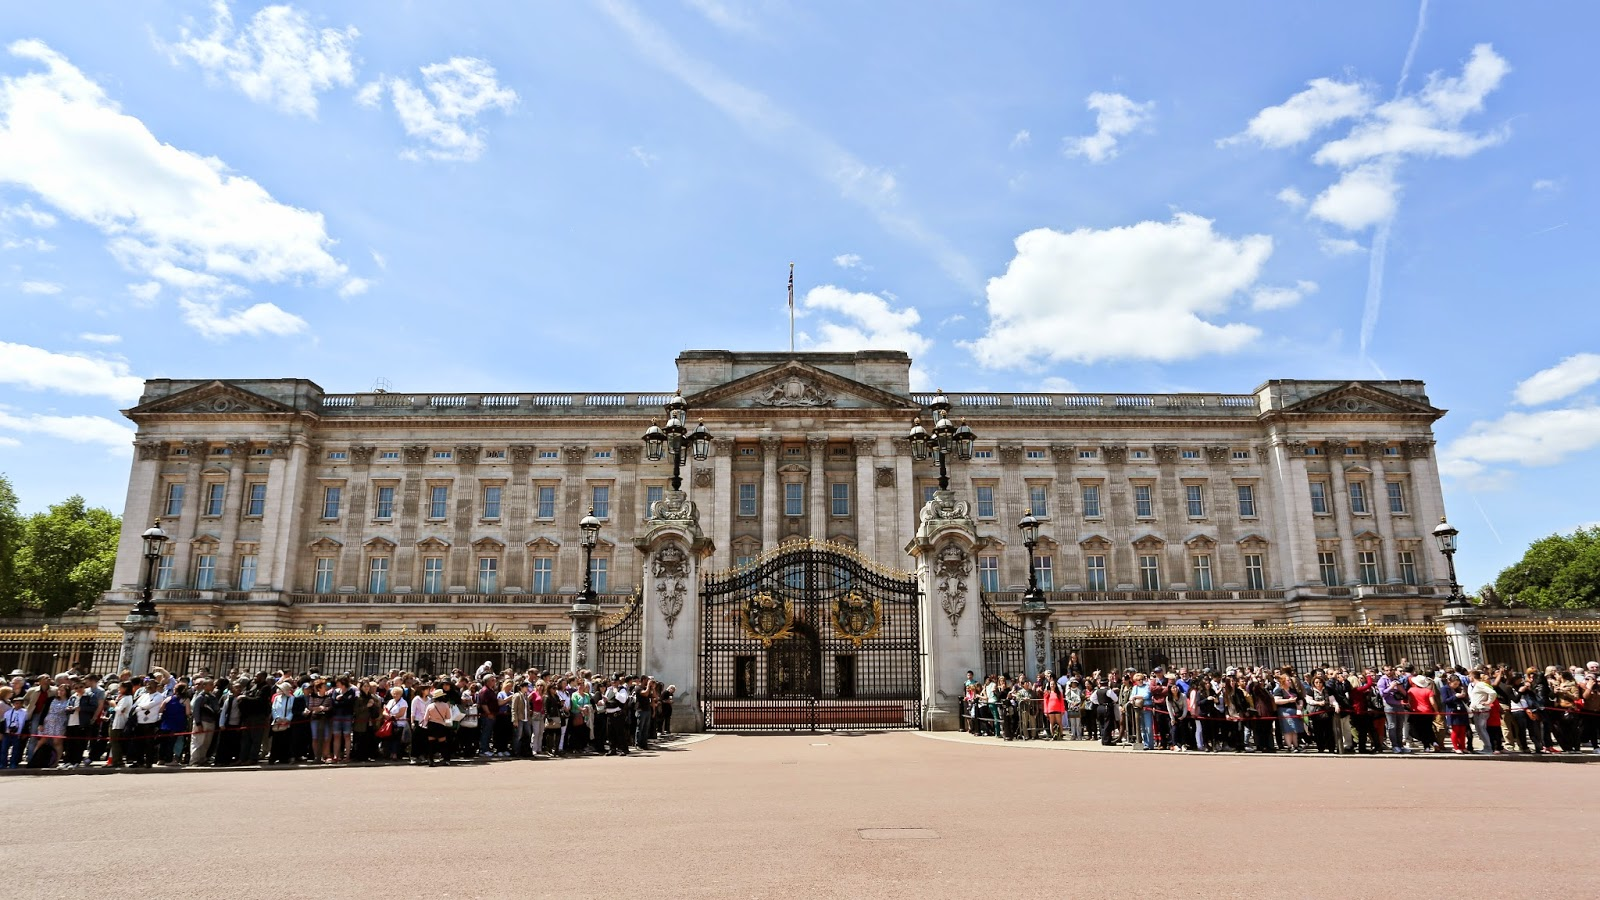 character analysis mrs knight buckingham palace Buckingham palace district is that he is not one to make his own comments on character (aegean art 99) through an in-depth analysis of the palace of.